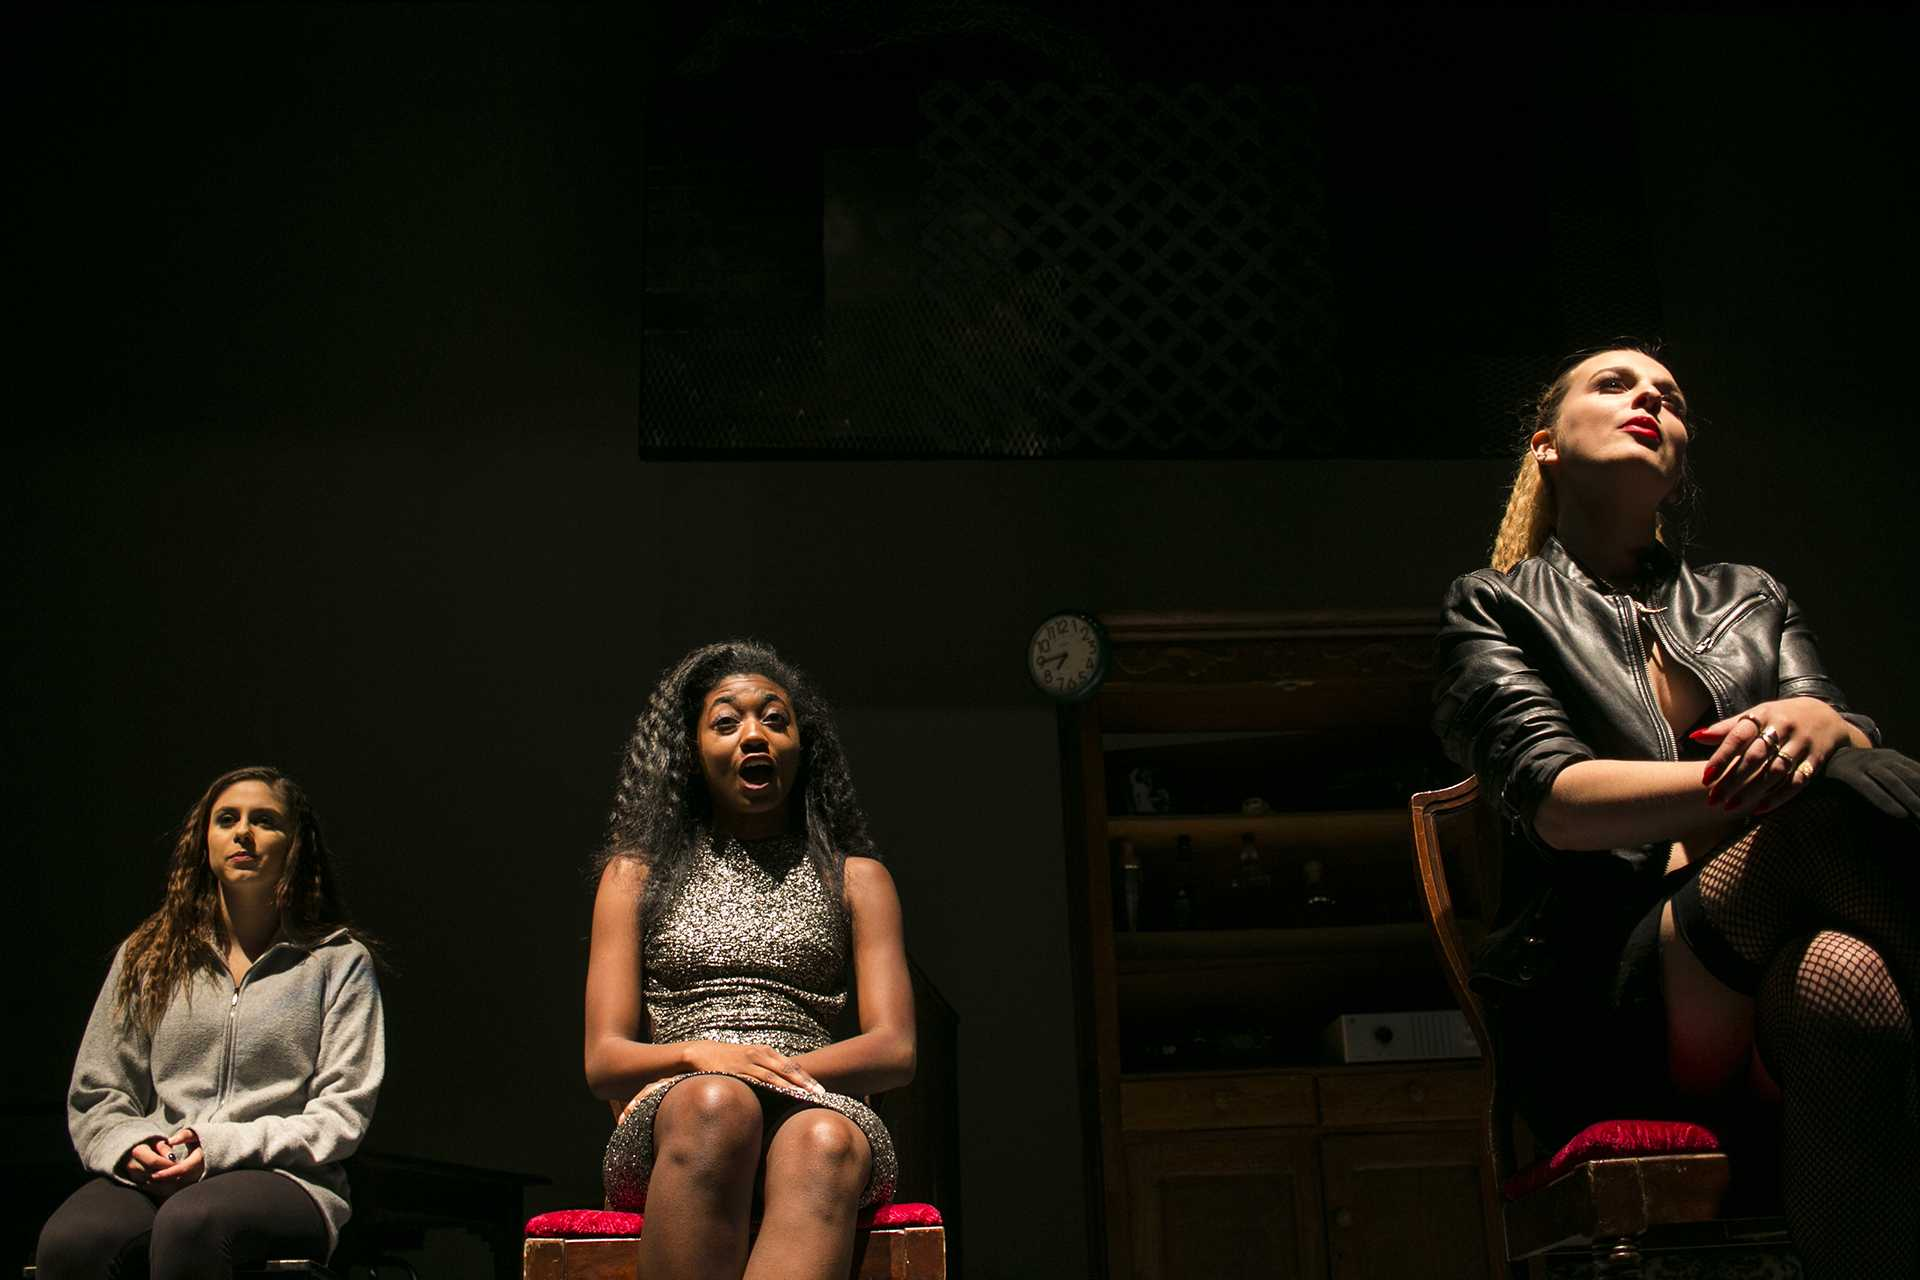 Actors perform during a dress rehearsal for Starfire in Theatre B in the Theater Building on Wednesday, Oct. 11, 2017. Starfire is free to attend for UI students, and $5 for the general public. (Joseph Cress/The Daily Iowan)